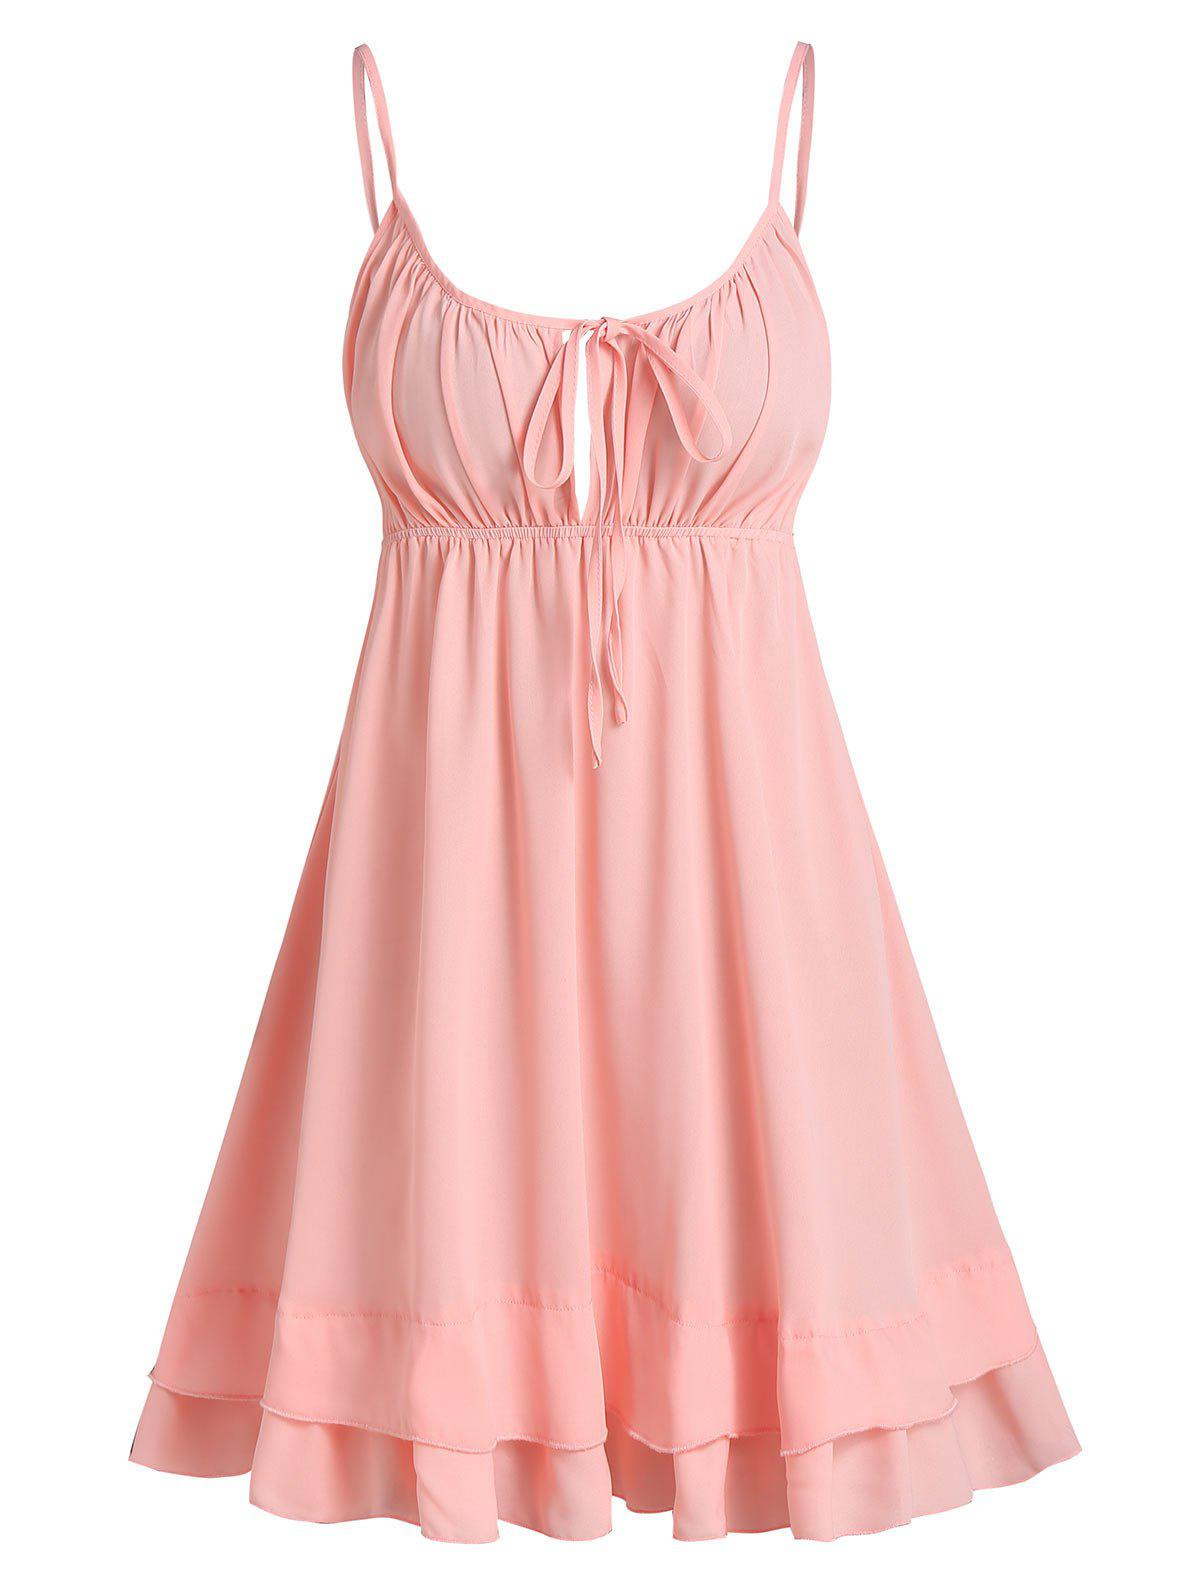 Open Back Tie Knot Flare Cami Dress - PINK XL